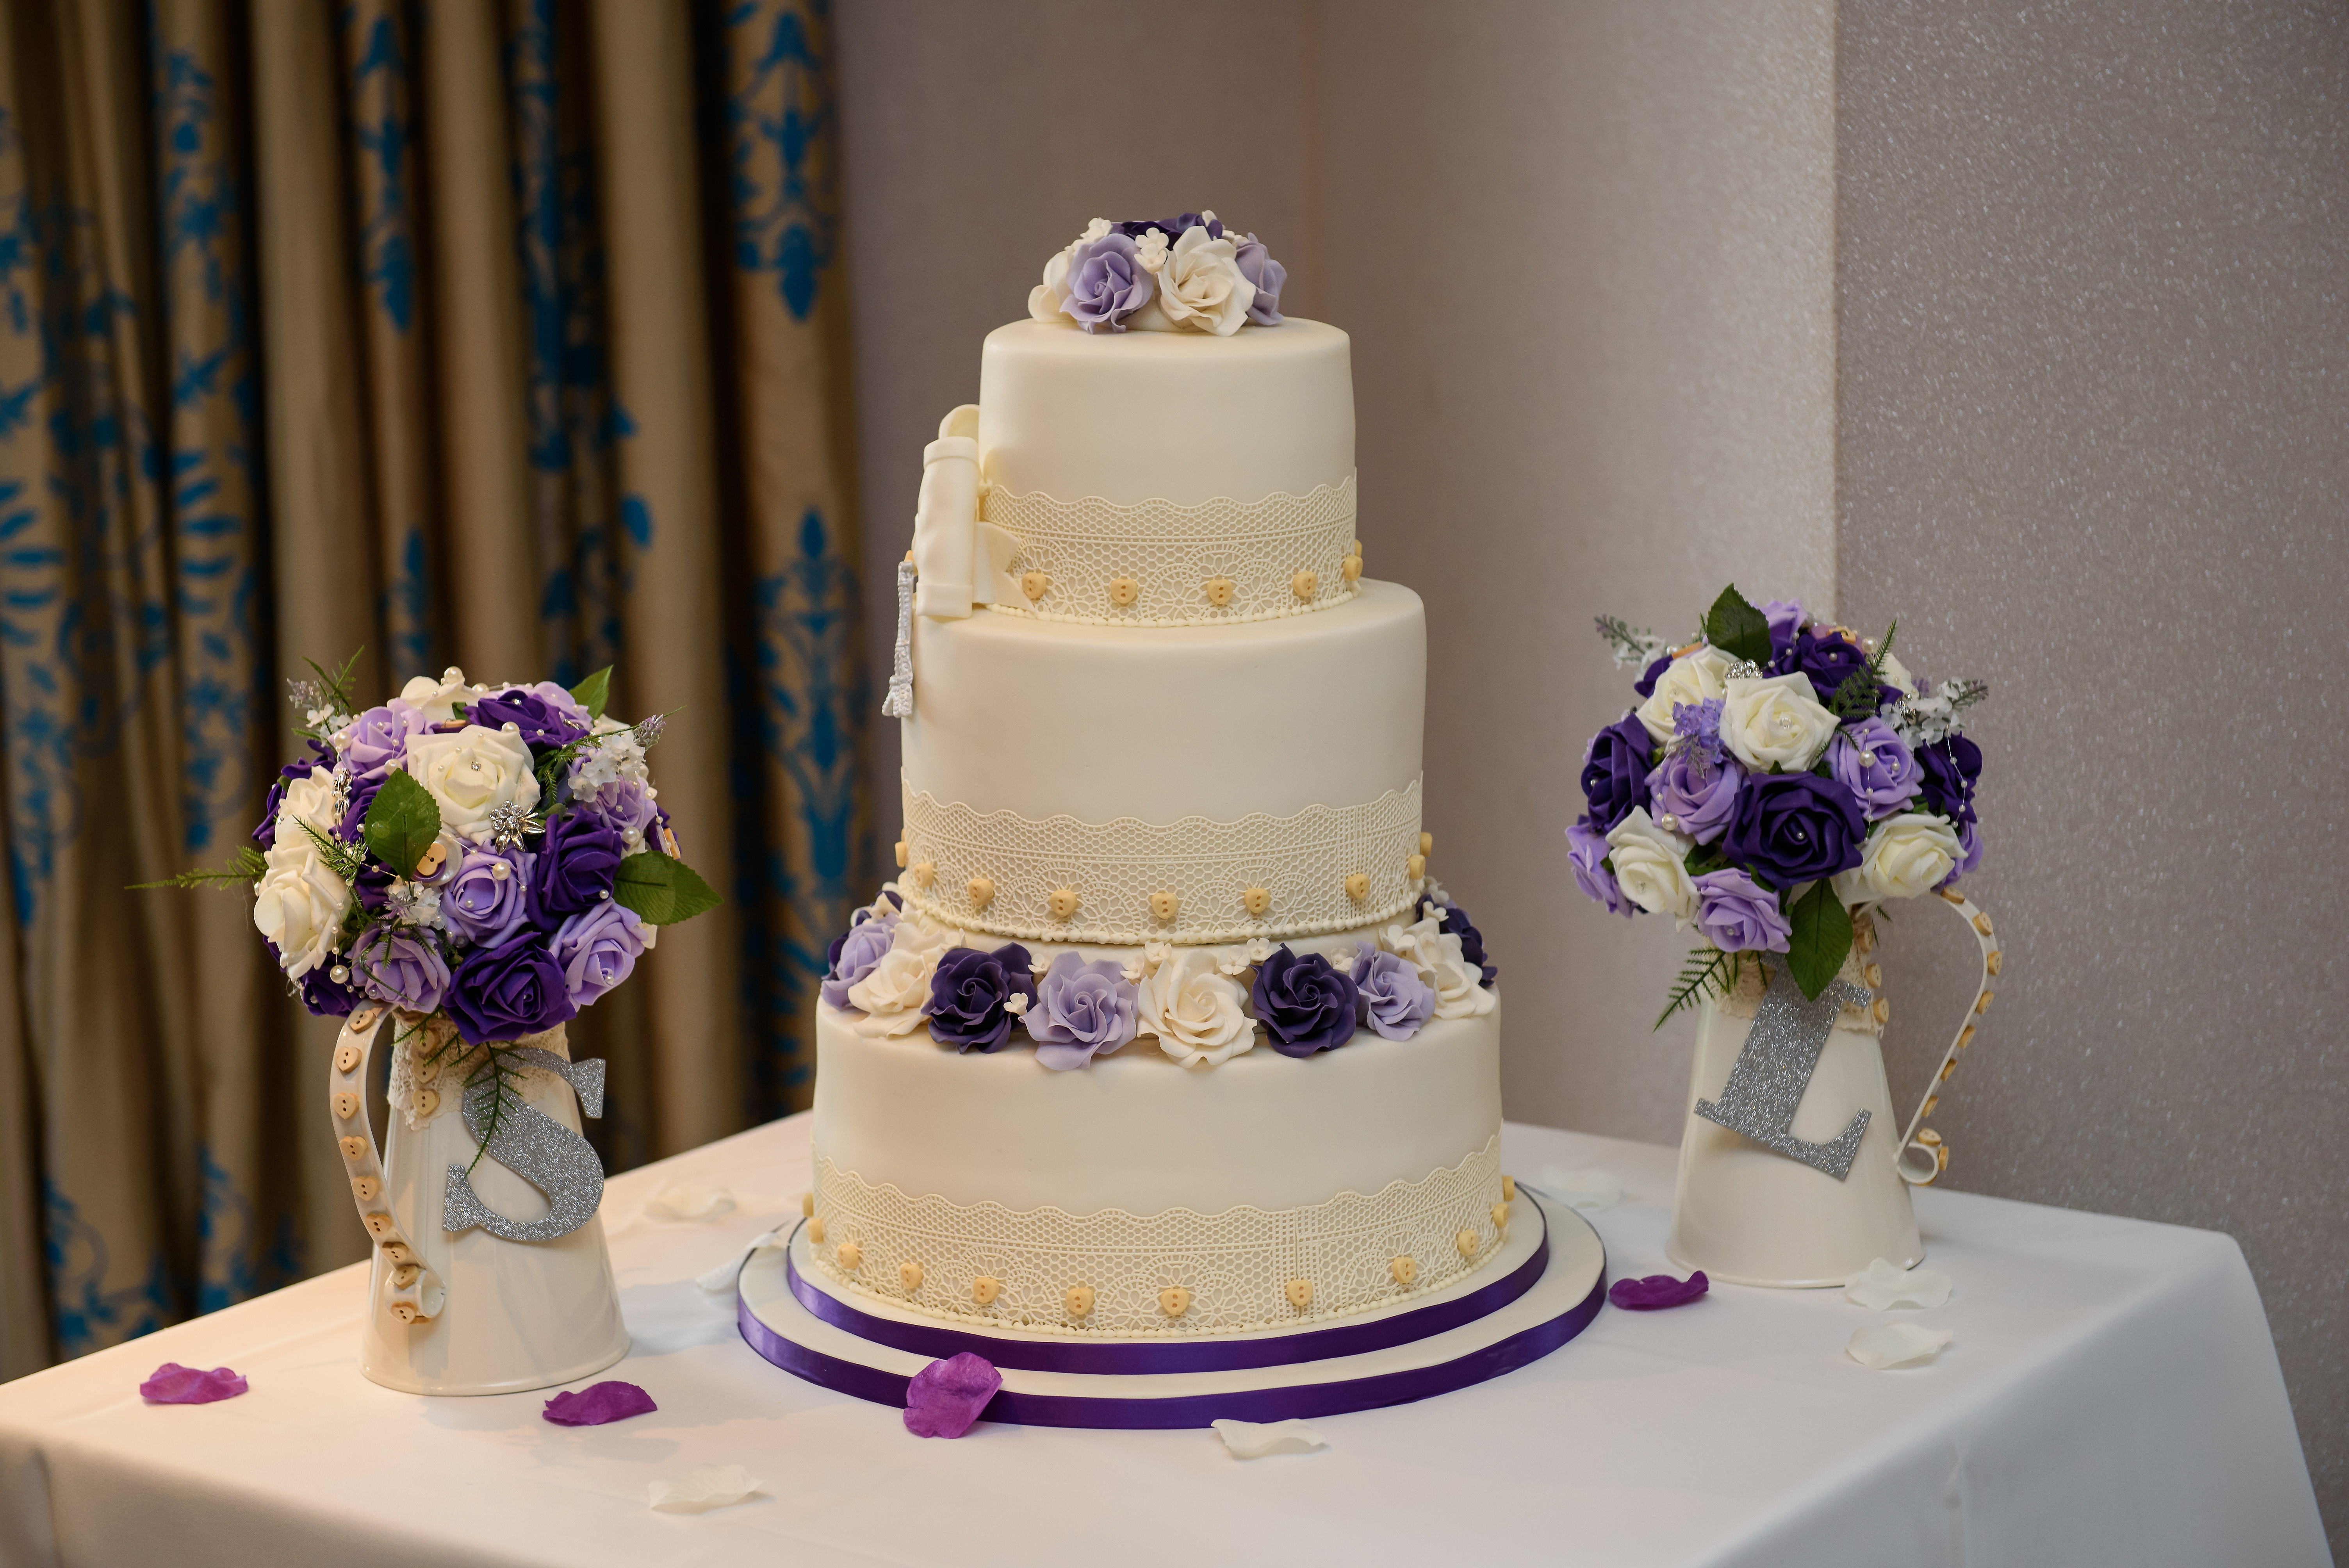 Wedding Cakes Enfield, Wedding Cakes North London